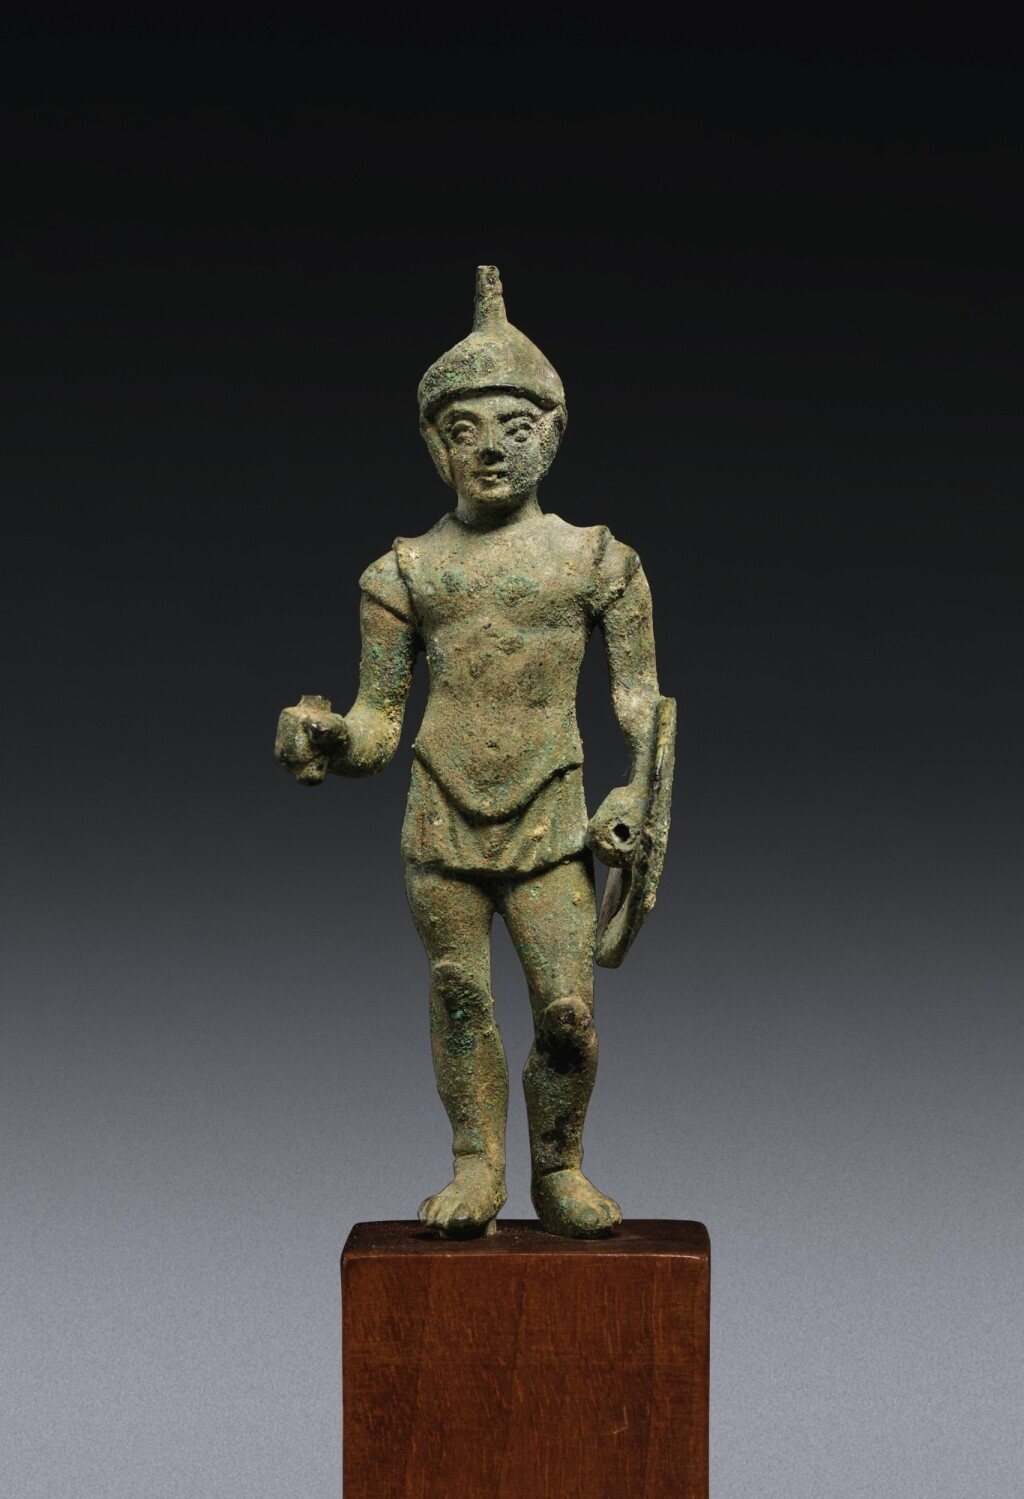 AN ITALIC BRONZE FIGURE OF A WARRIOR, CIRCA 3RD CENTURY B.C.